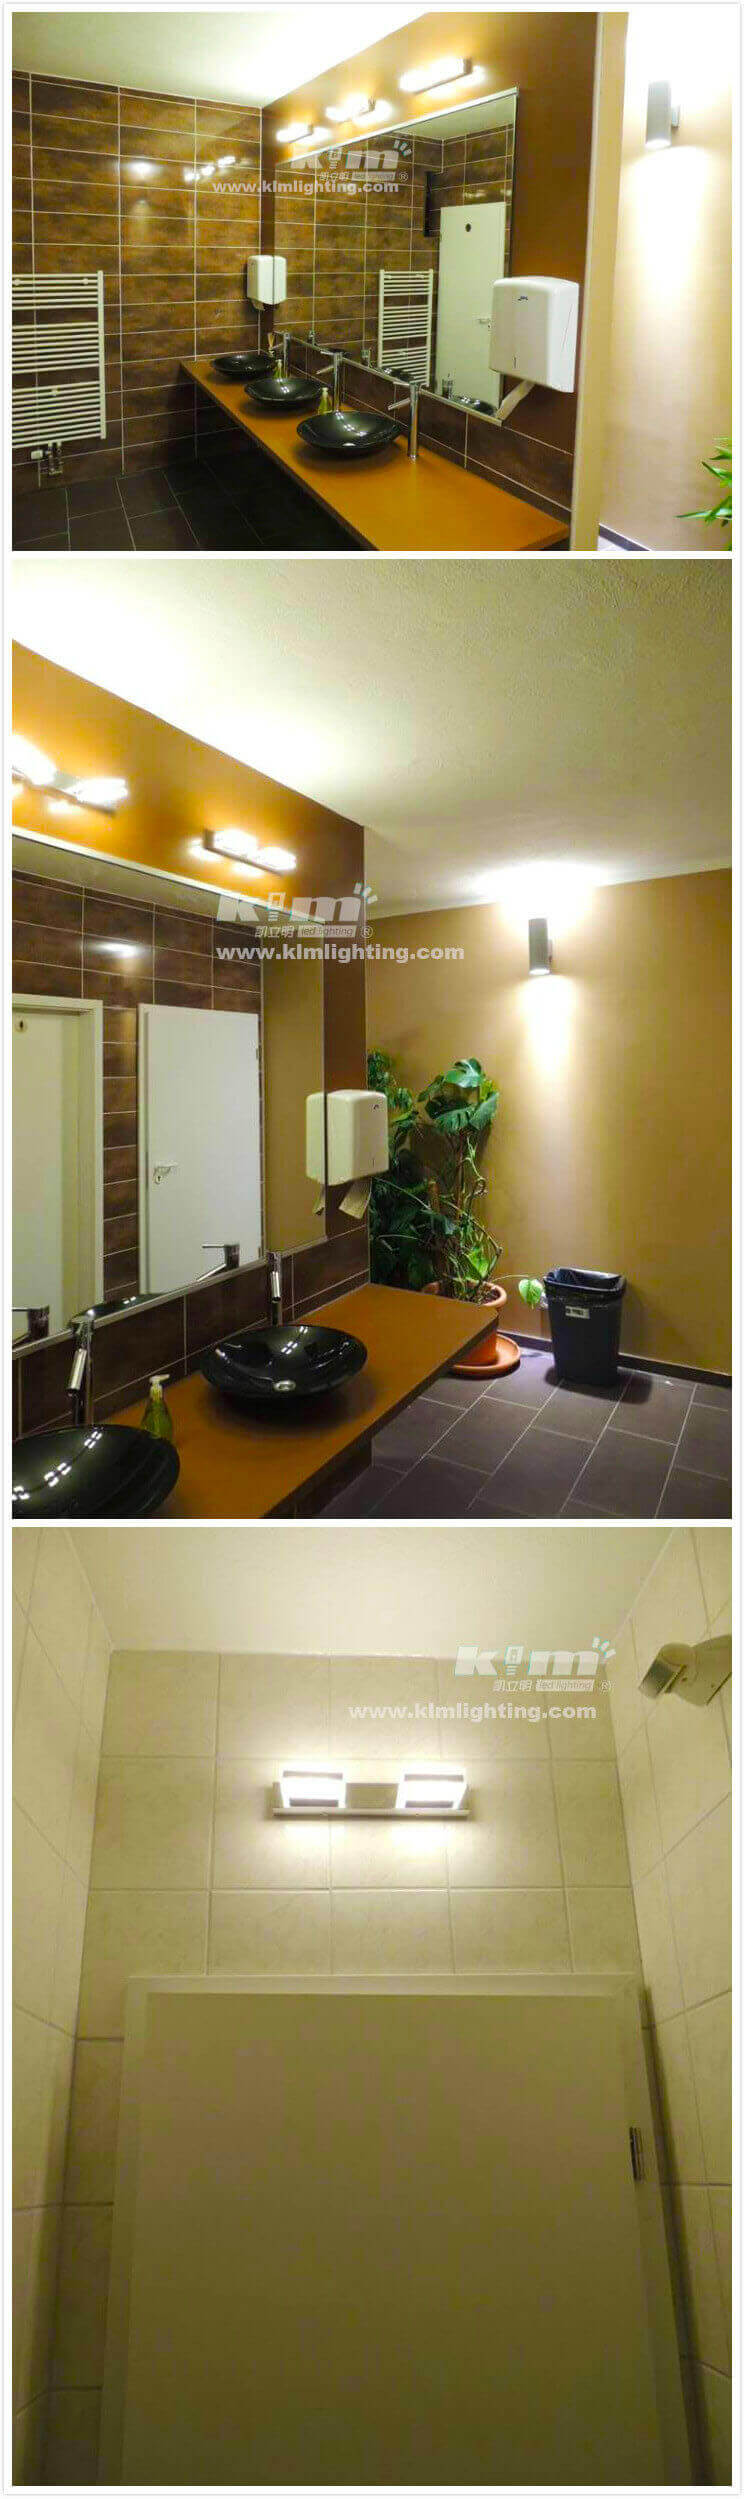 LED mirrow light application for toliet